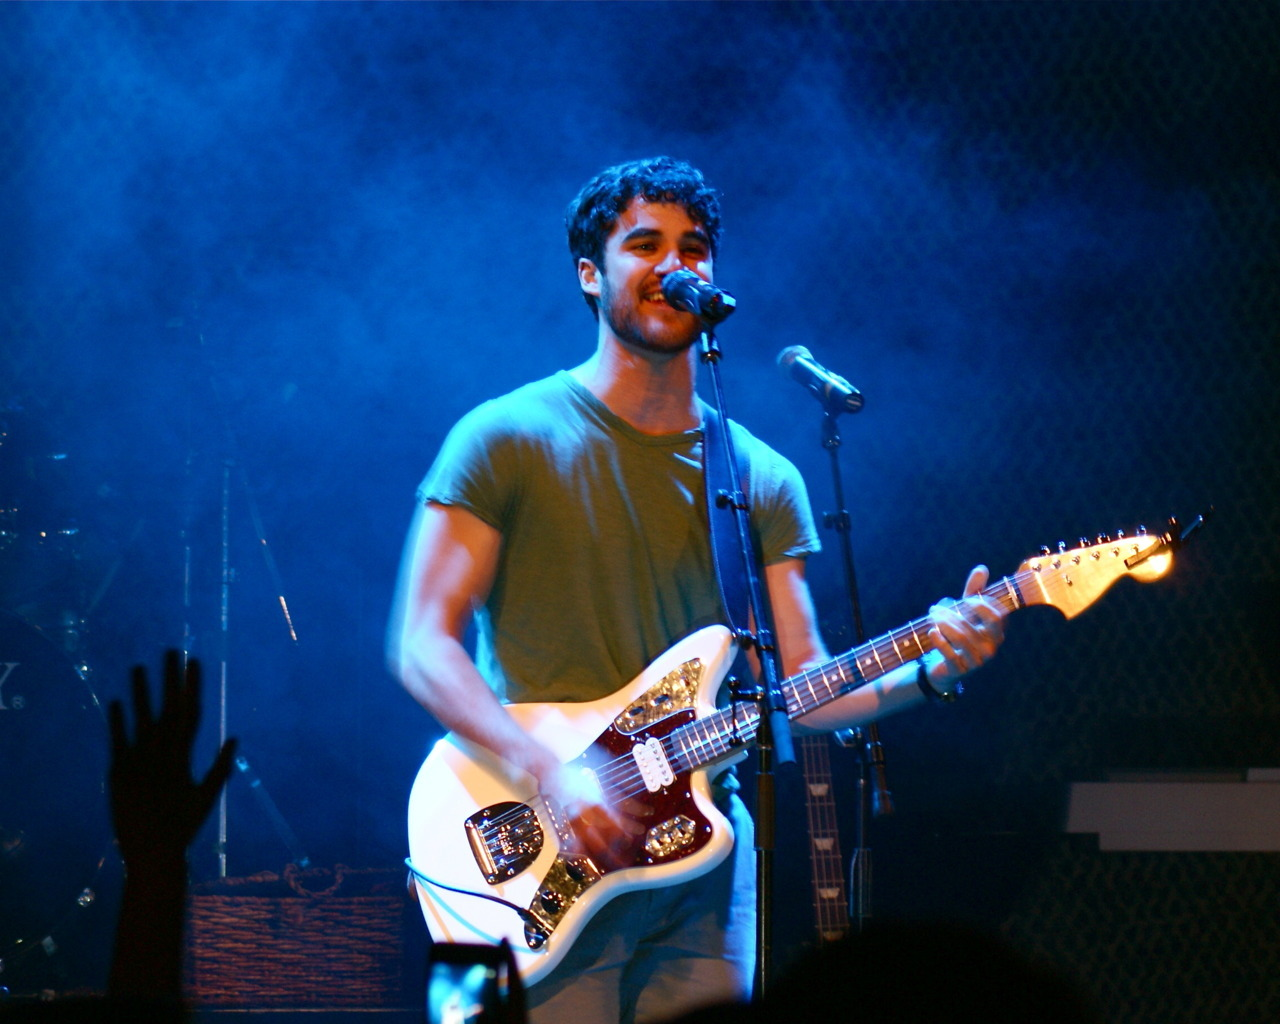 Darren Criss - Apocalyptour May 23, 2012